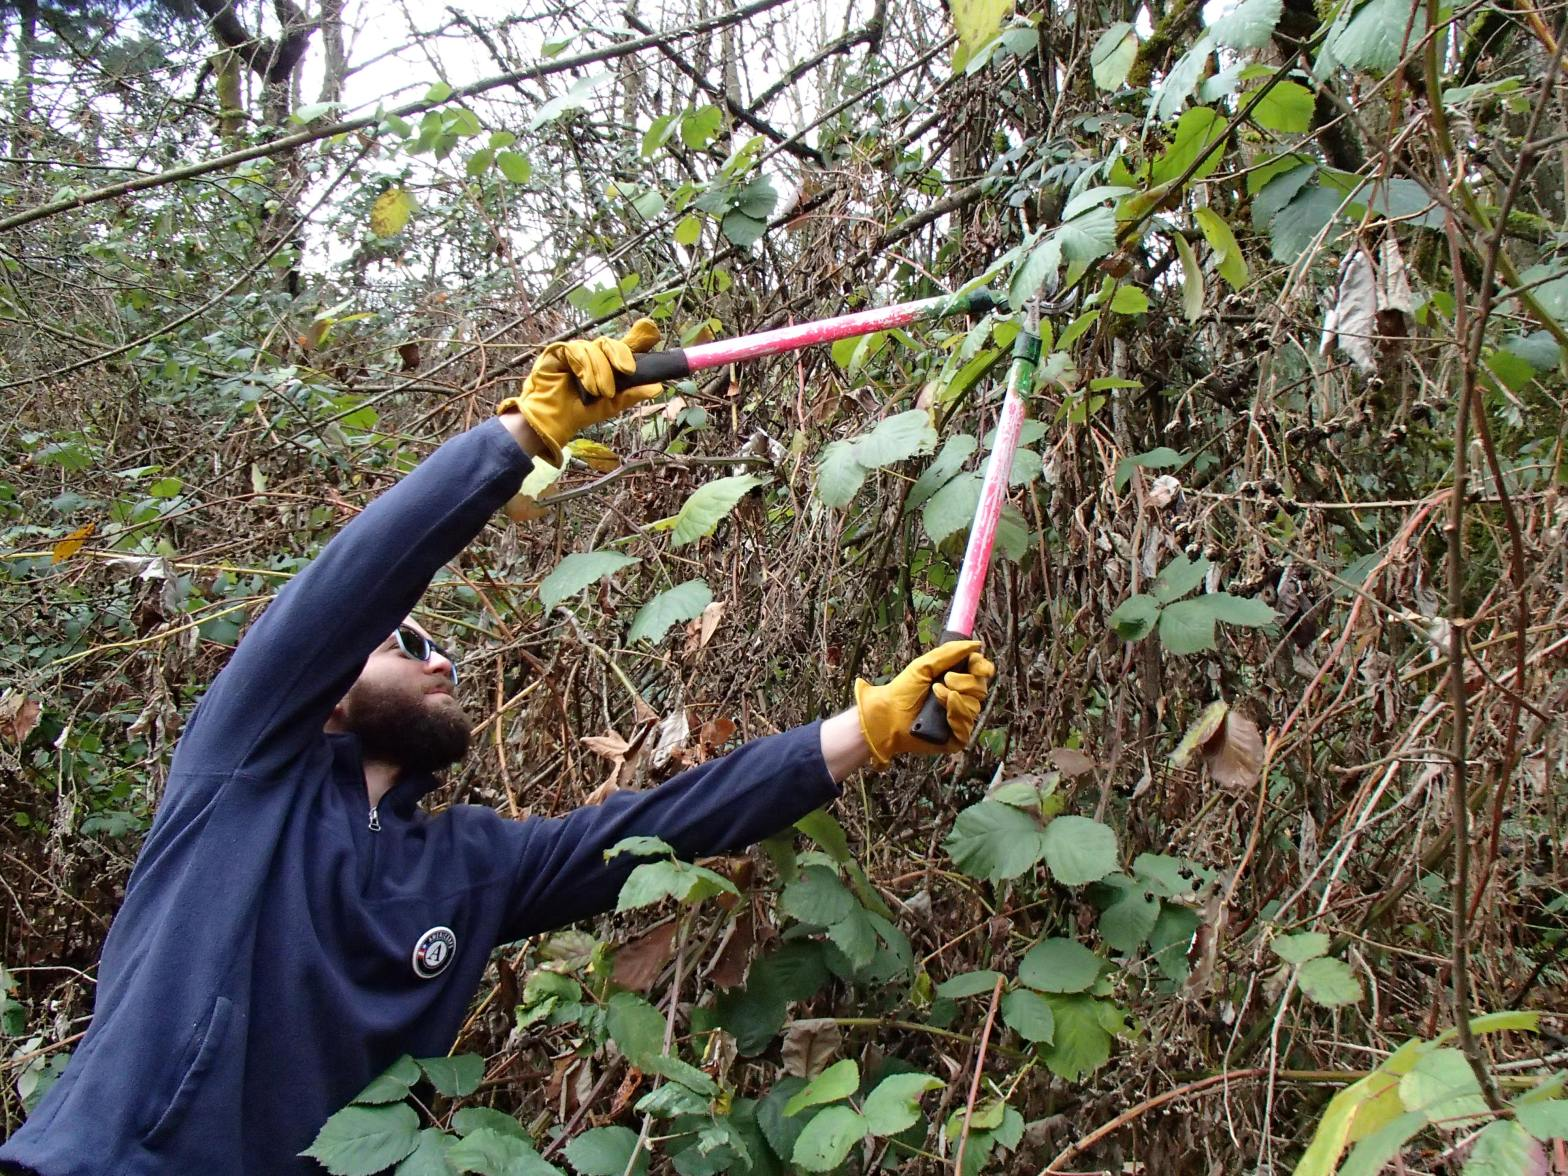 WSC member Josef removing blackberry bushes with a lopper